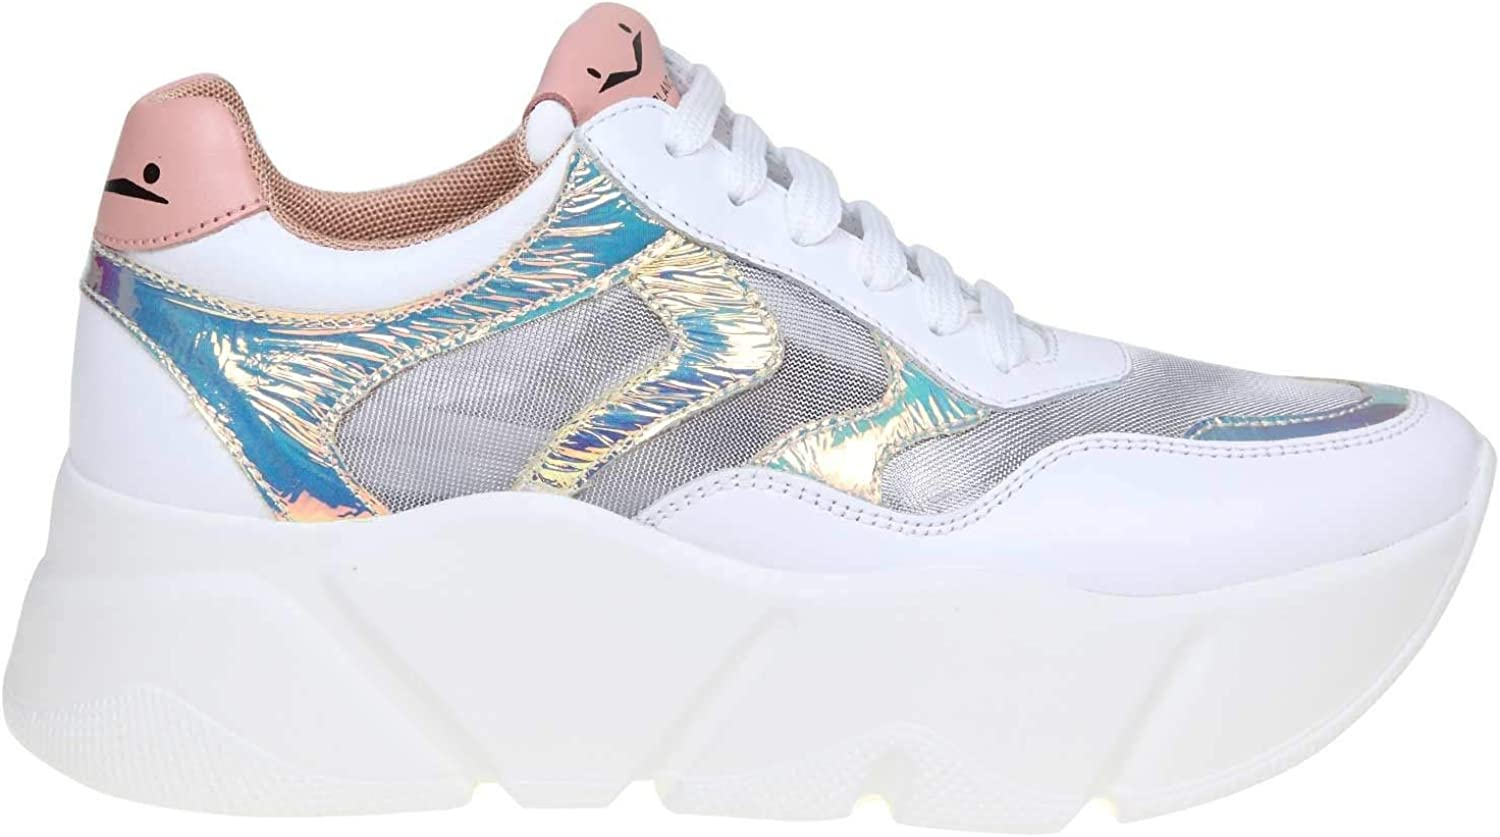 VOILE whiteHE Women's 1N02001201359203 White Leather Sneakers